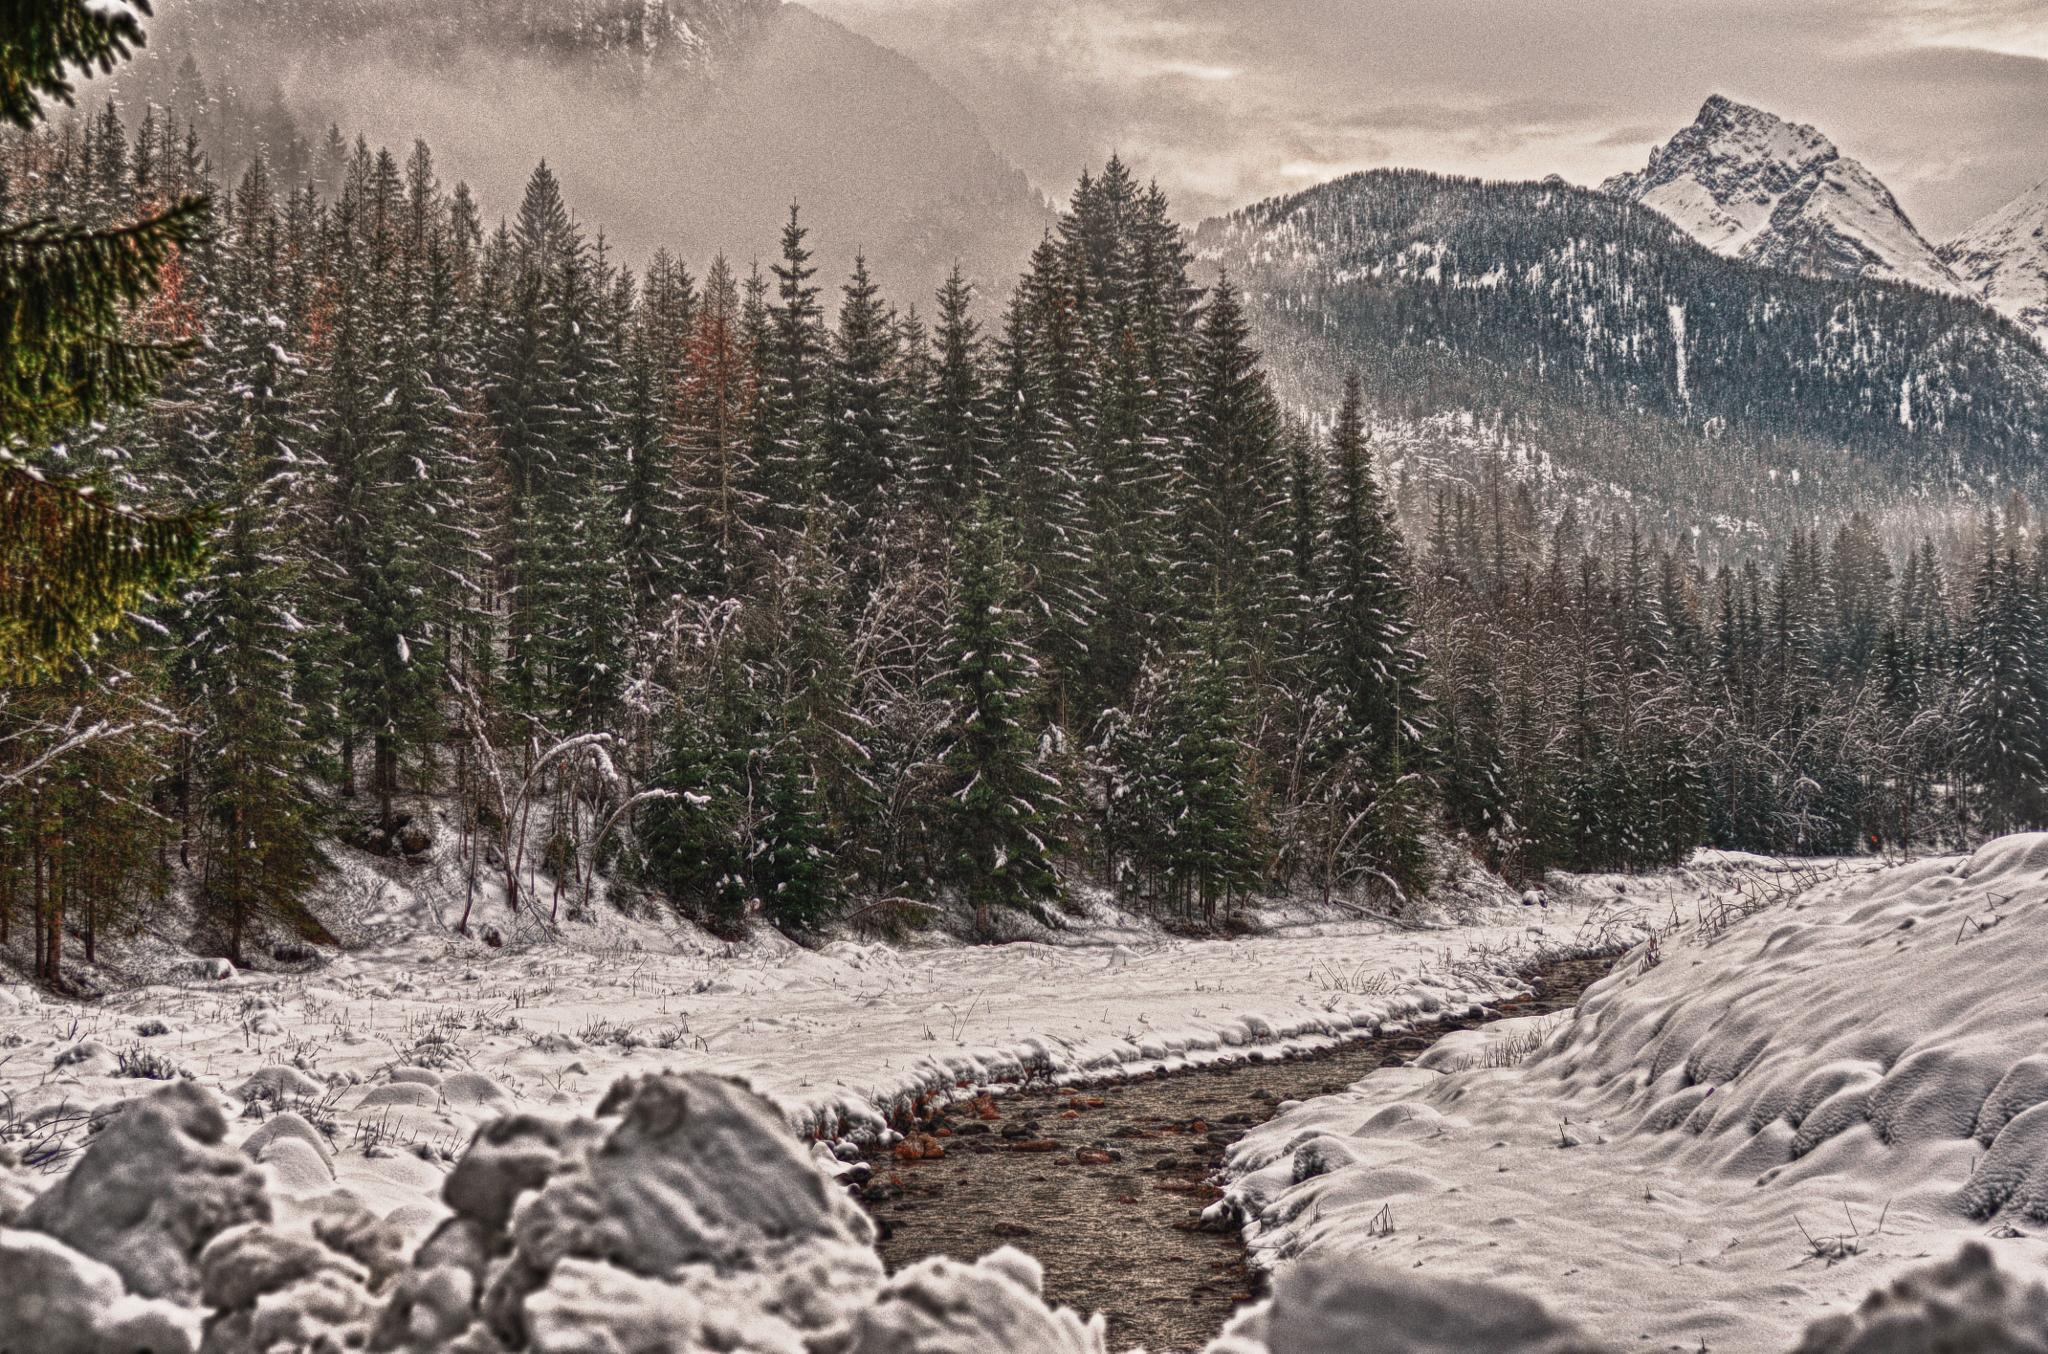 Pettorina river n. 2 - winter vision by andragoli